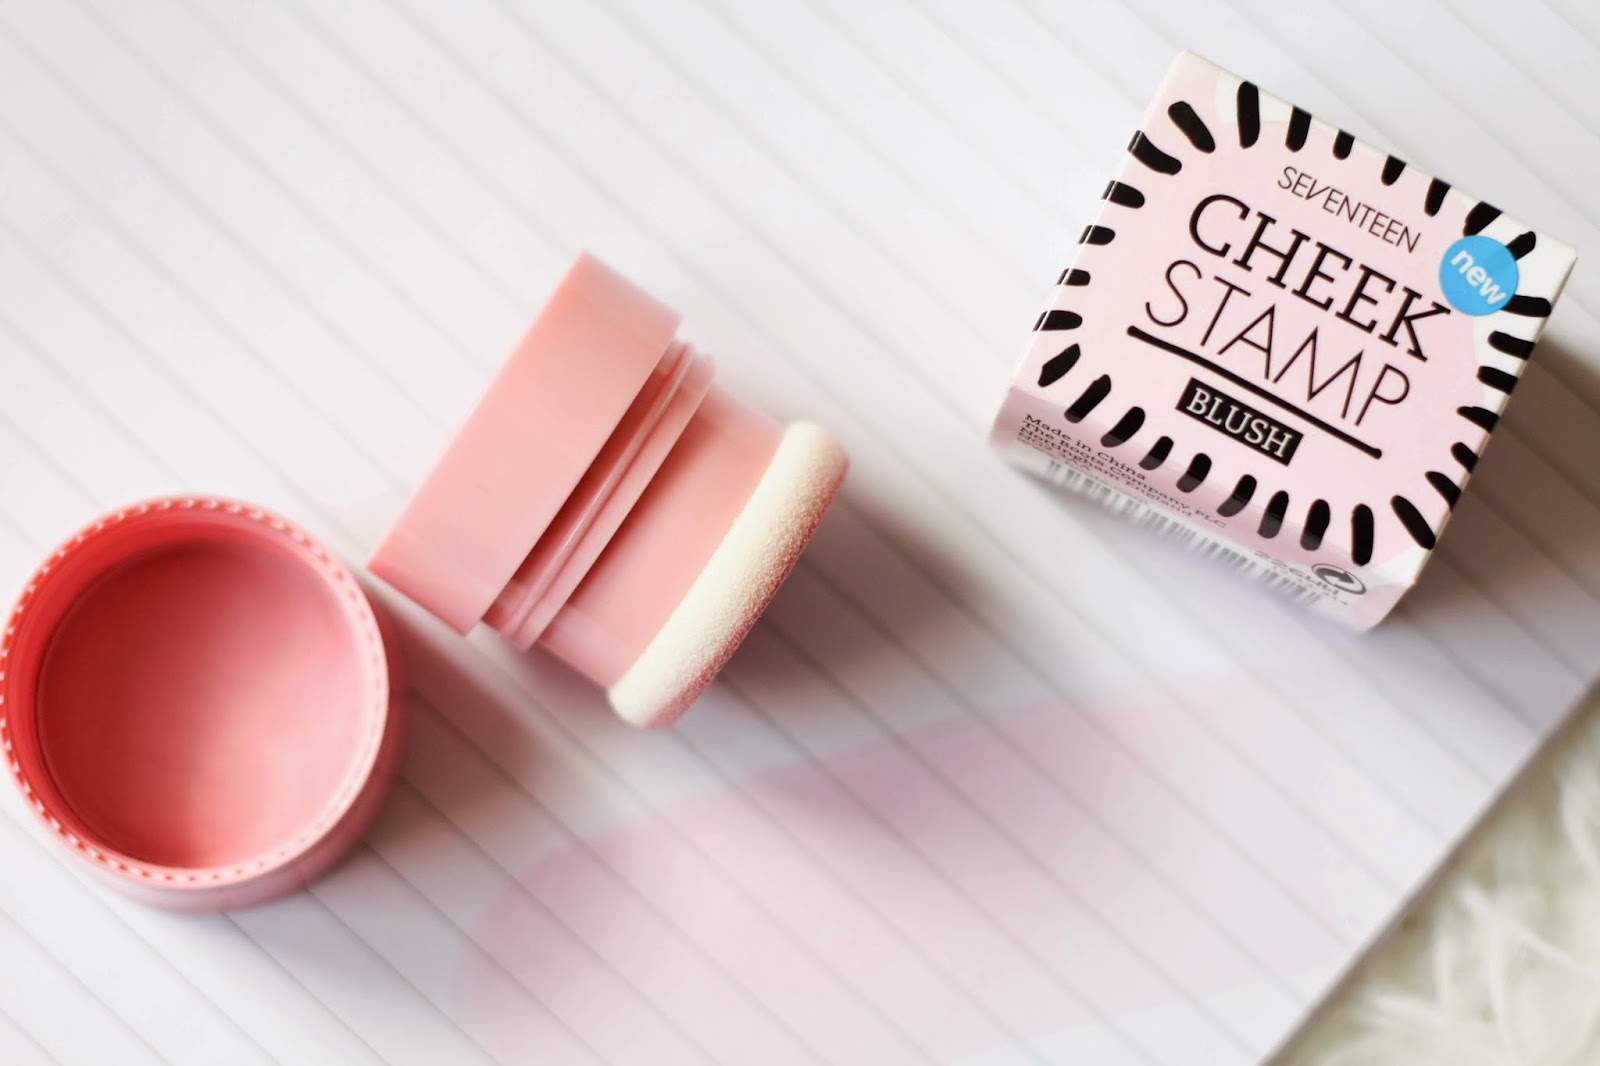 Seventeen Cheek Stamp review